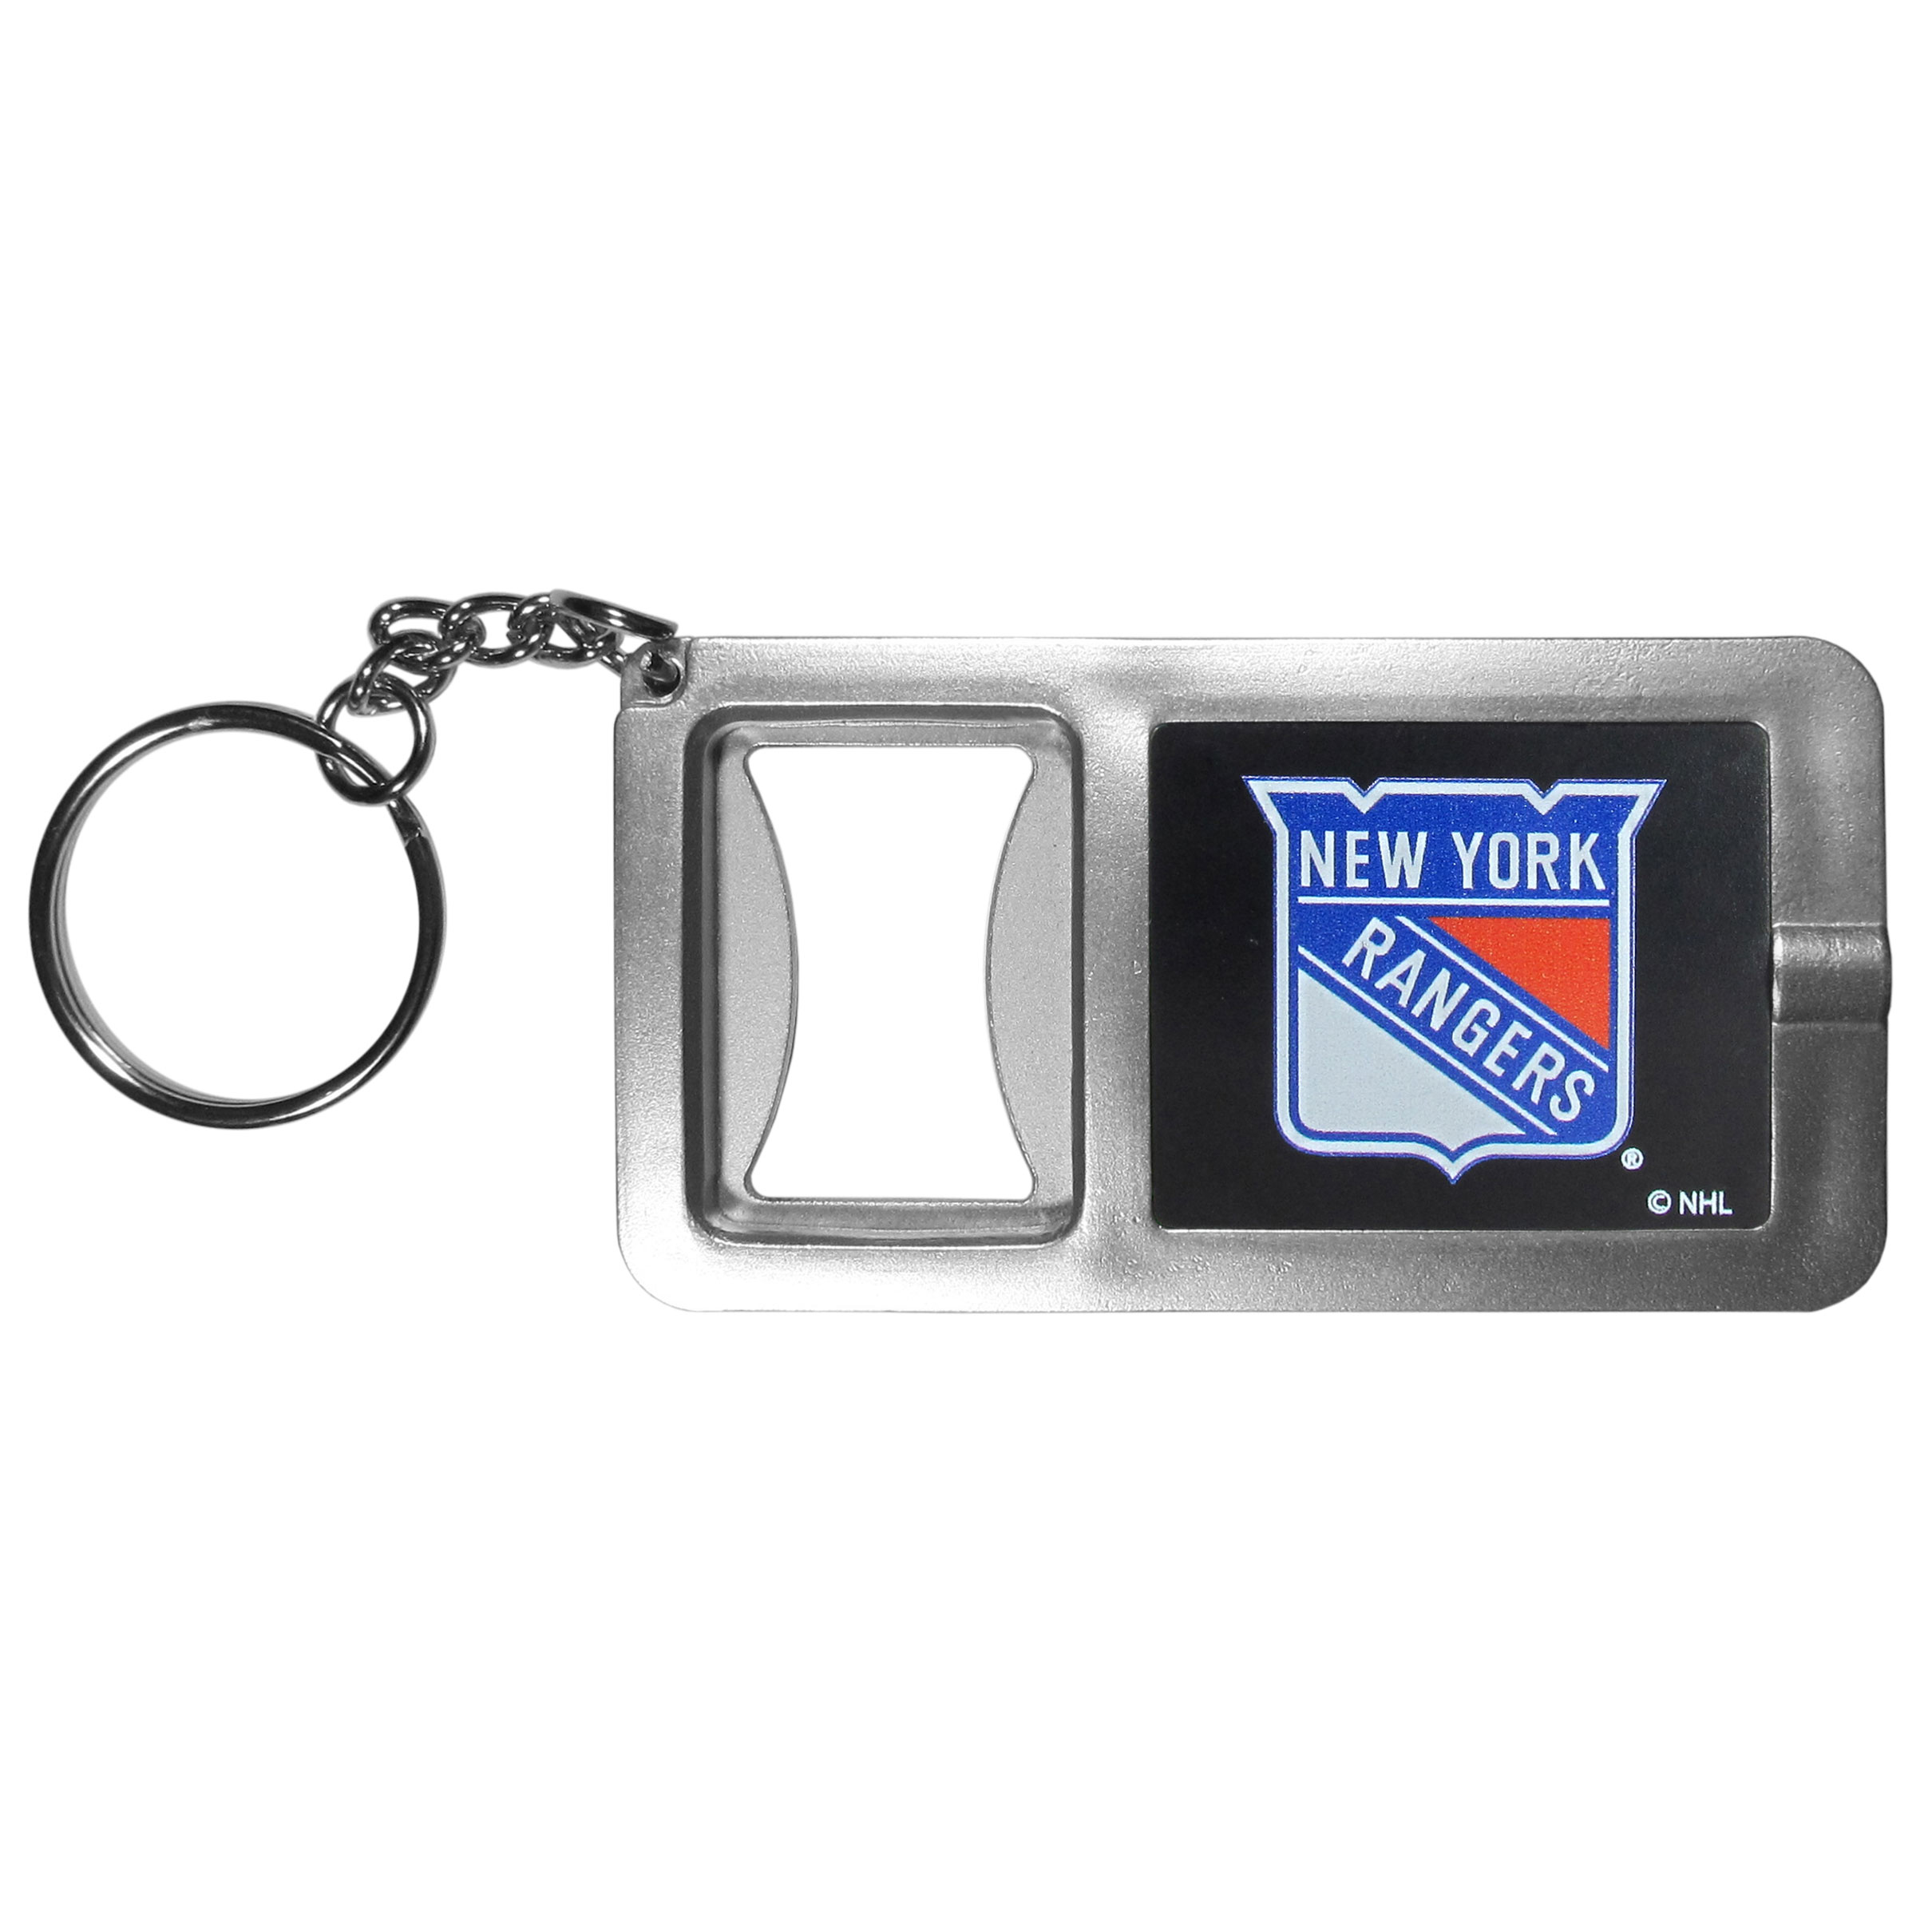 New York Rangers® Flashlight Key Chain with Bottle Opener - Never be without light with our New York Rangers® flashlight keychain that features a handy bottle opener feature. This versatile key chain is perfect for camping and travel and is a great way to show off your team pride!